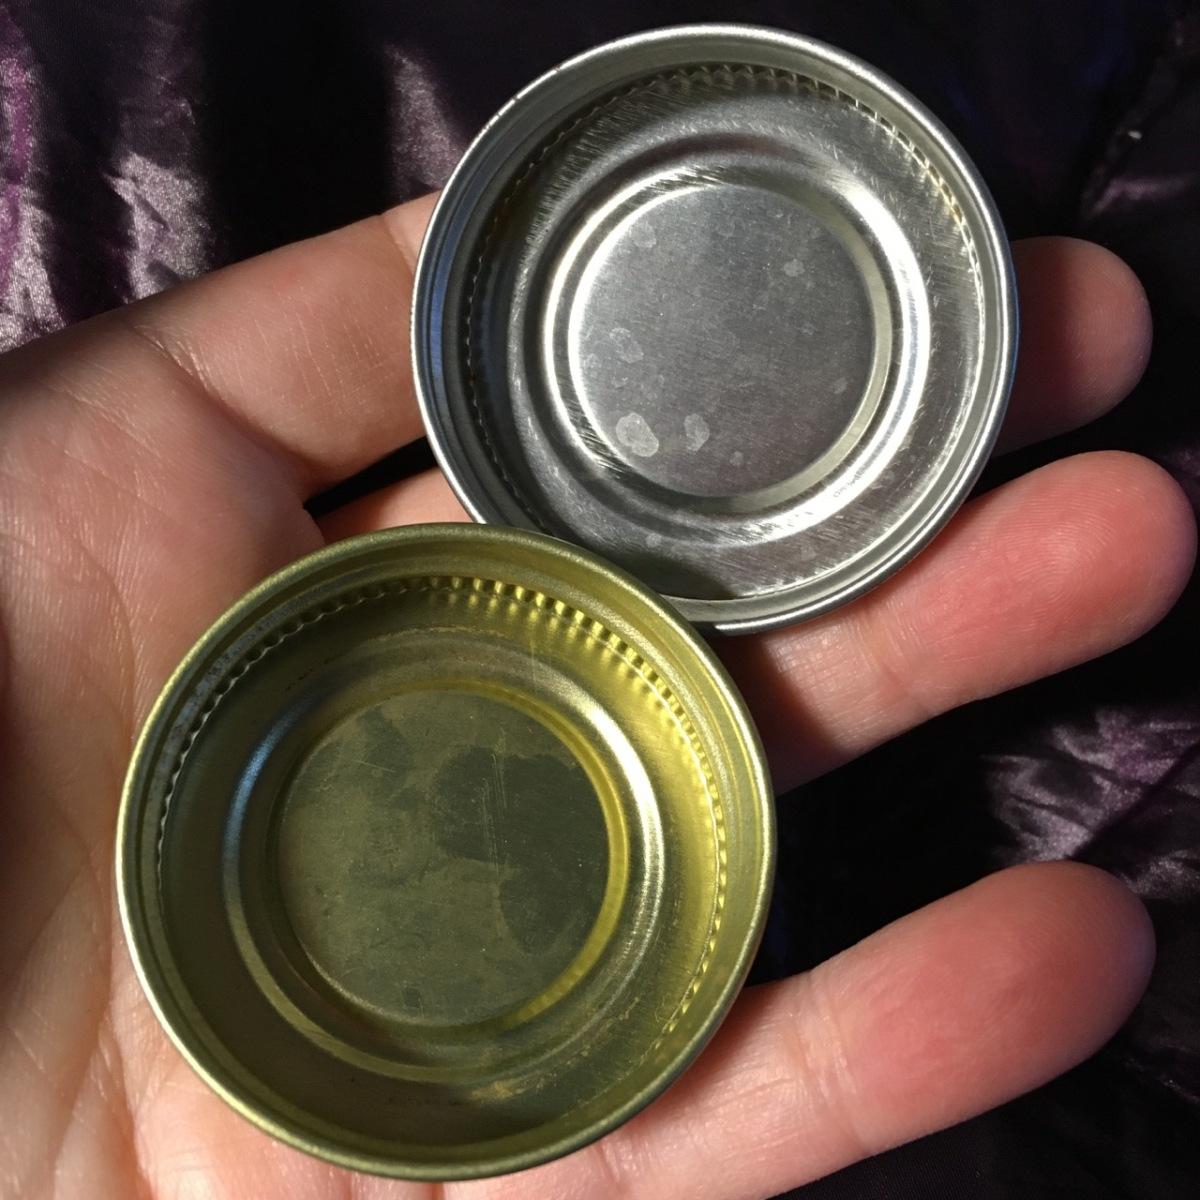 Under side of green lid is goldend rim; silver tone is solid color throughout